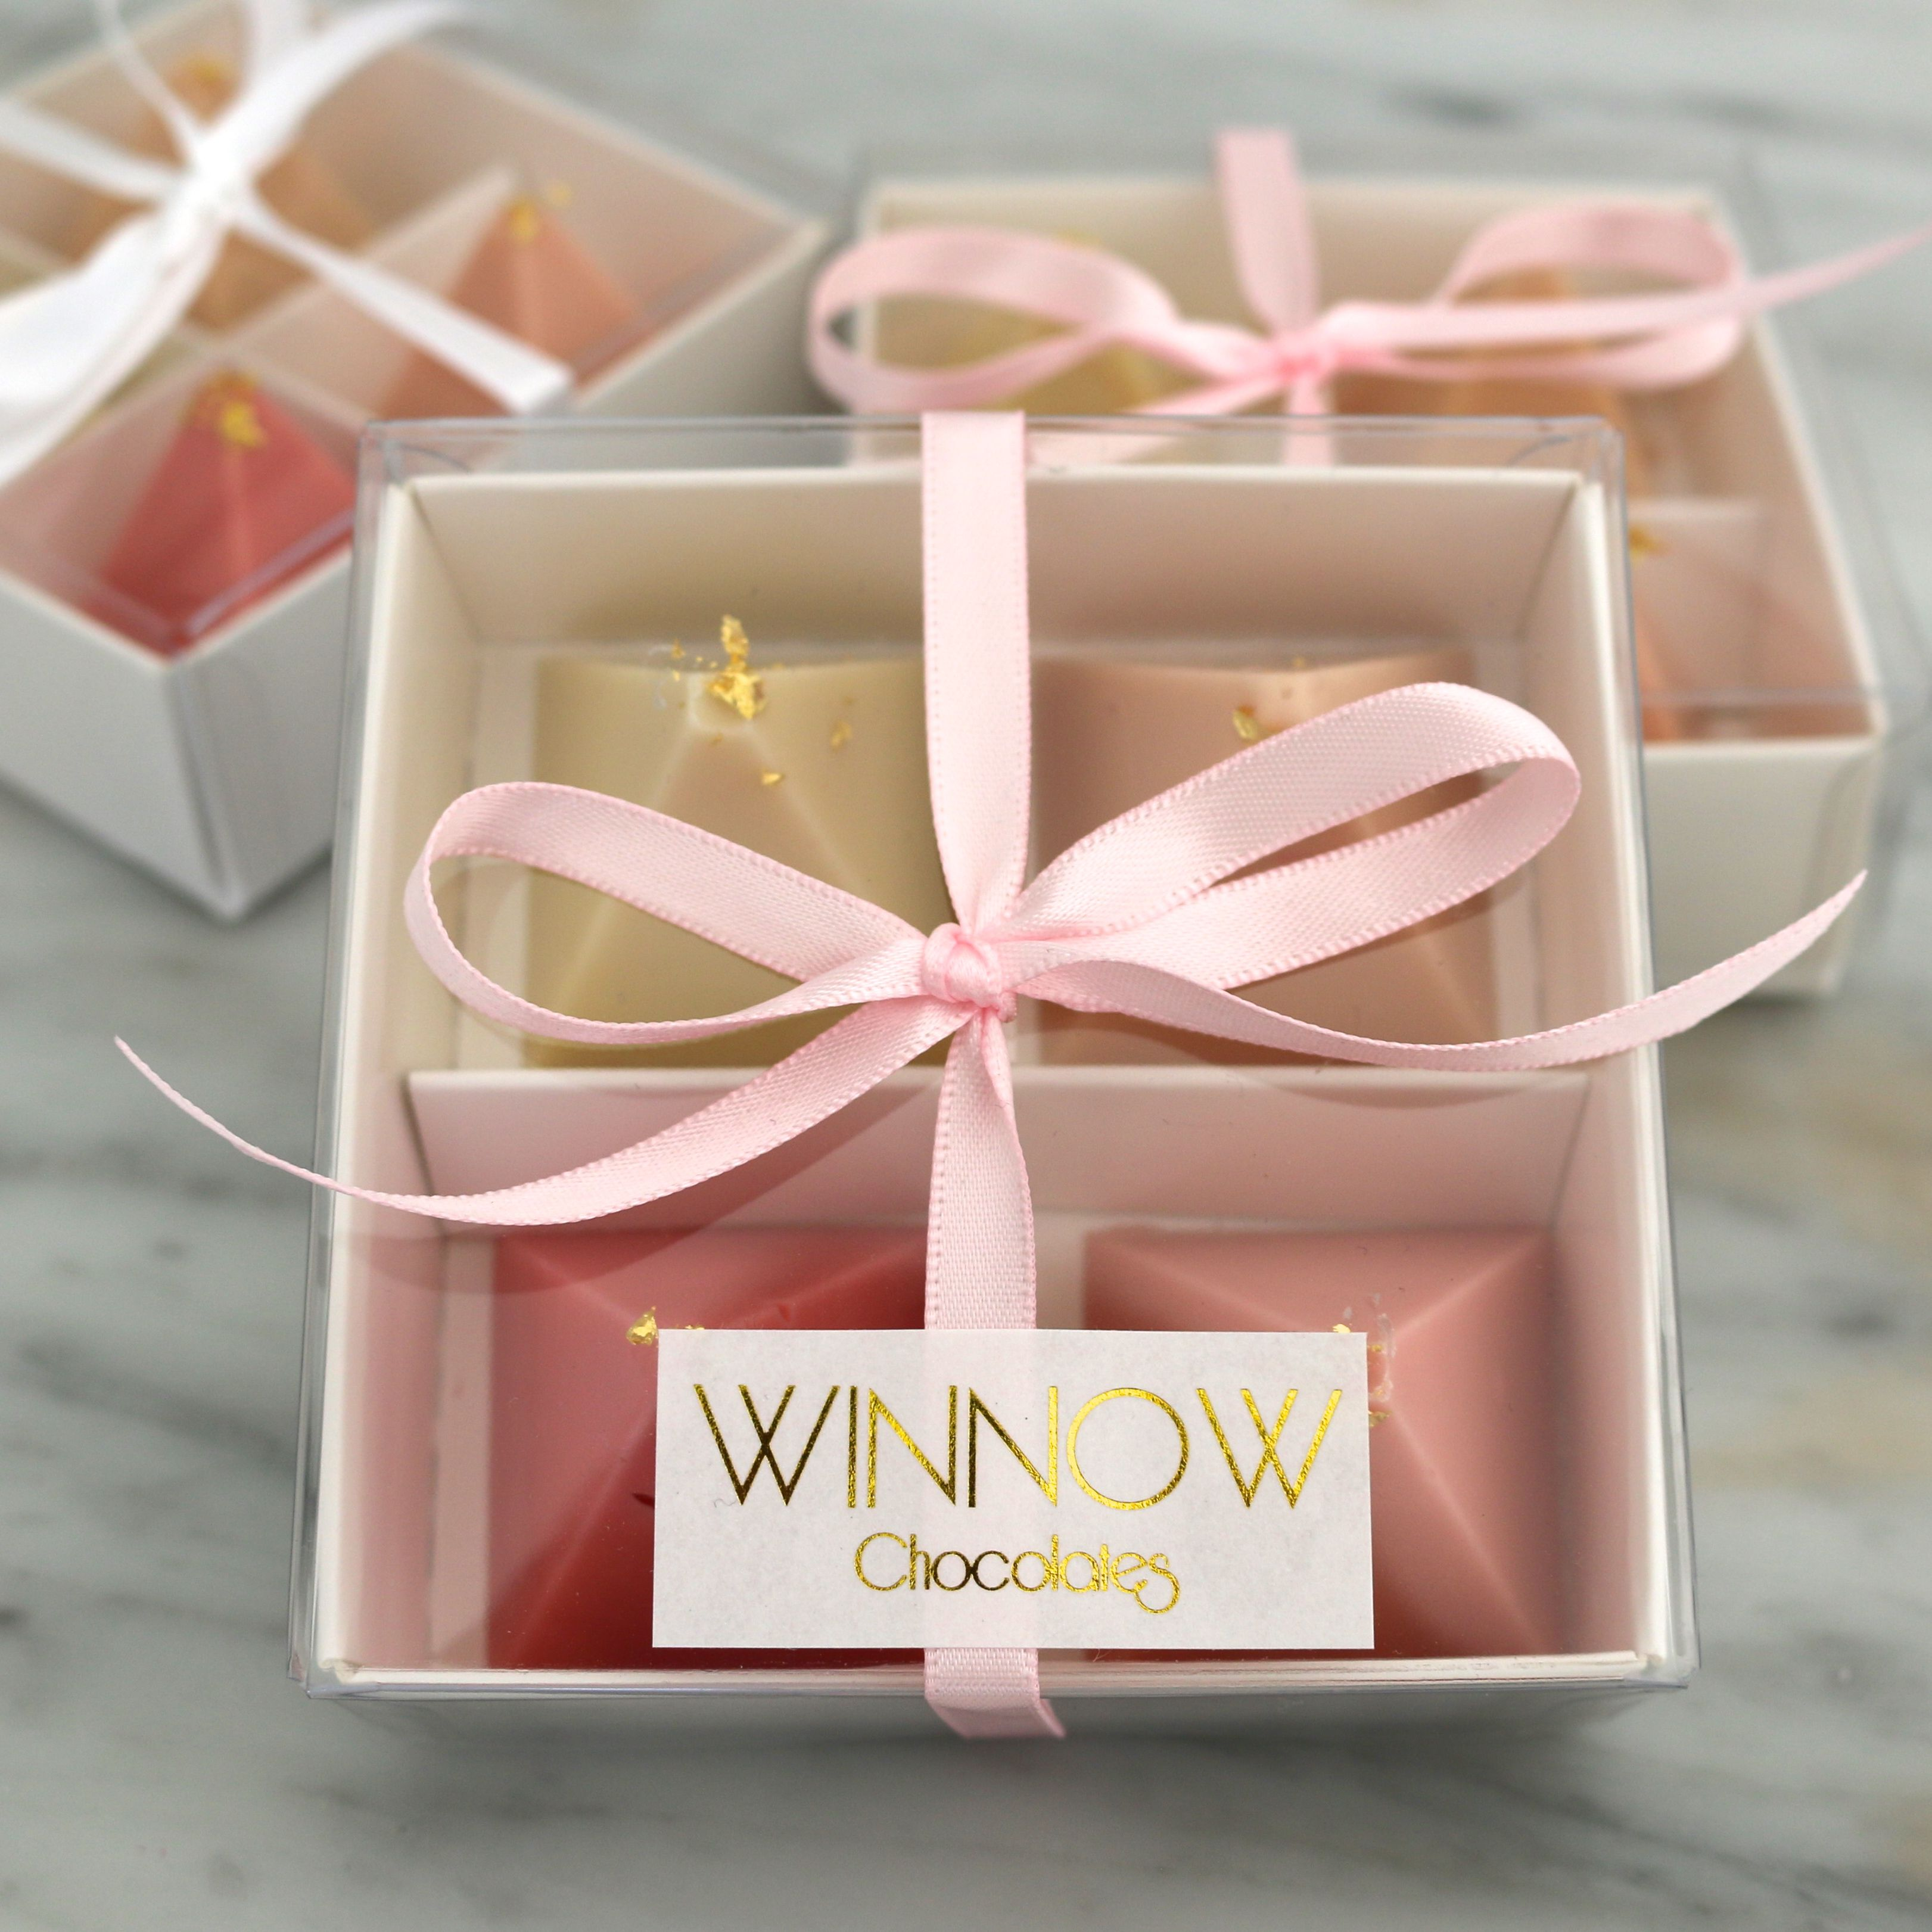 Winnow Chocolates Wedding Favours Pretty Pink Ombre Box With